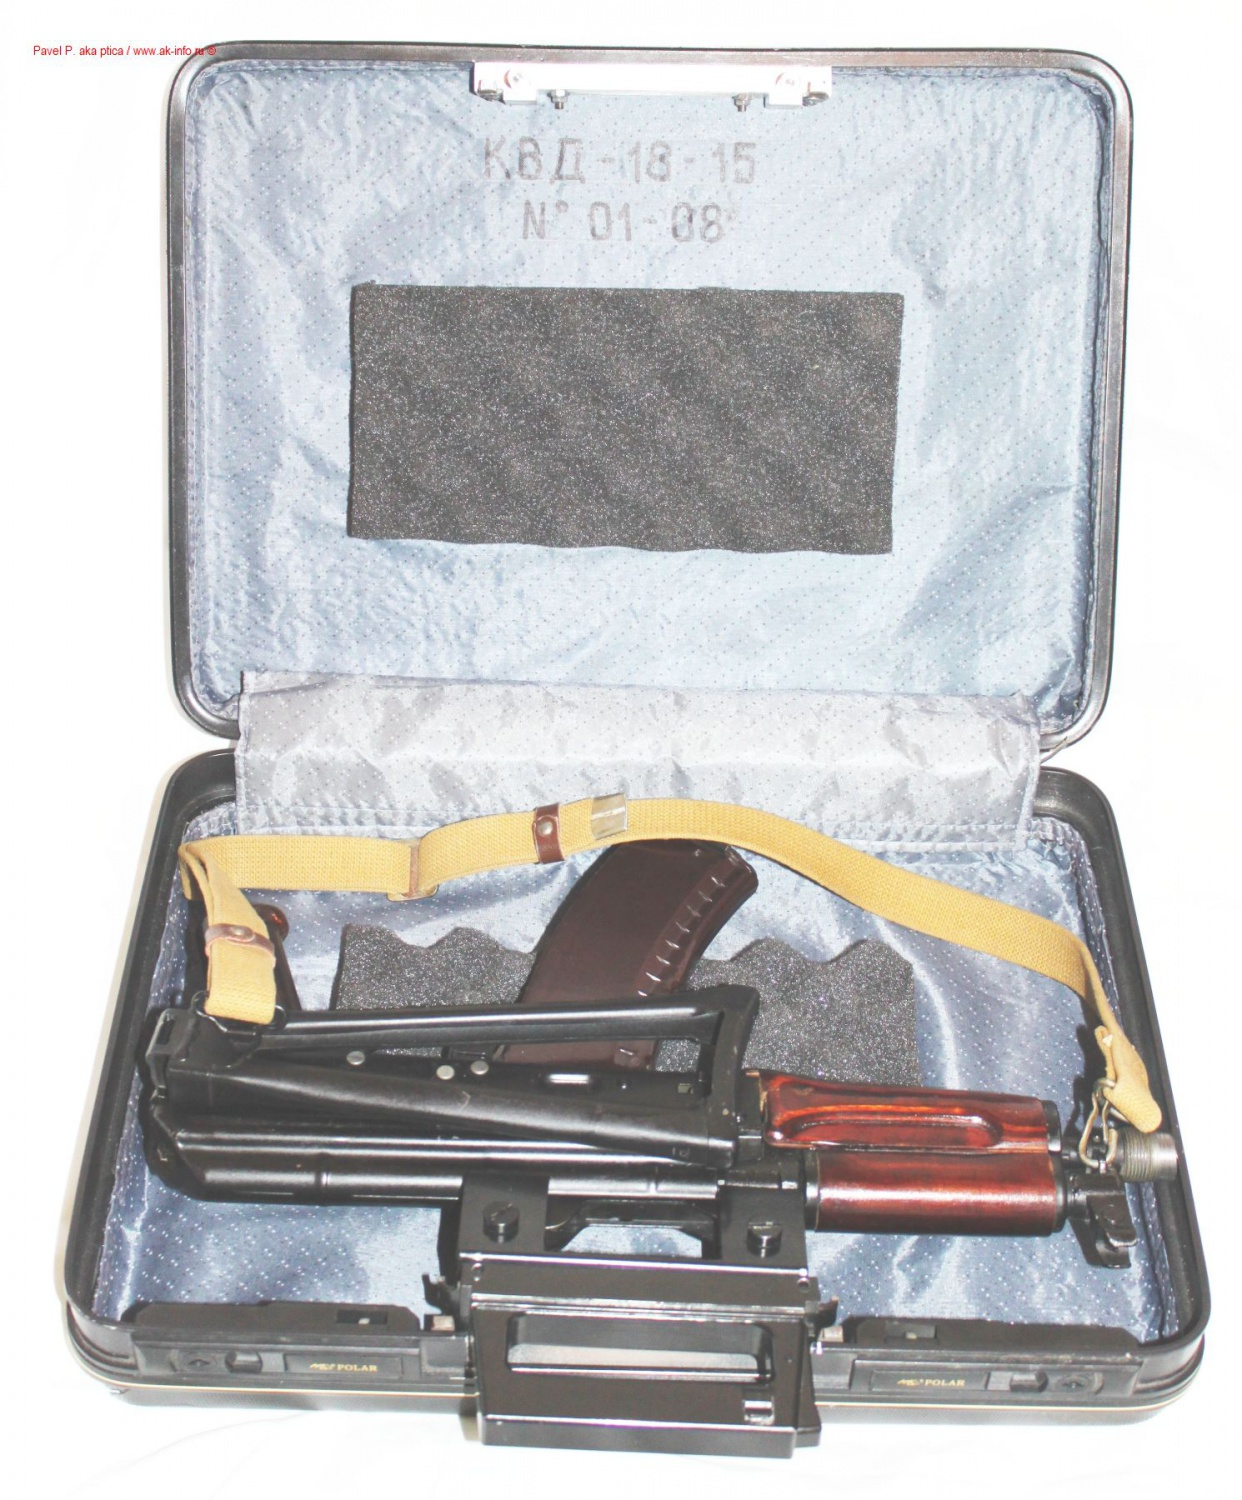 aks-74u-vip-hidden-soviet-weapon-for-kgb-agents-4